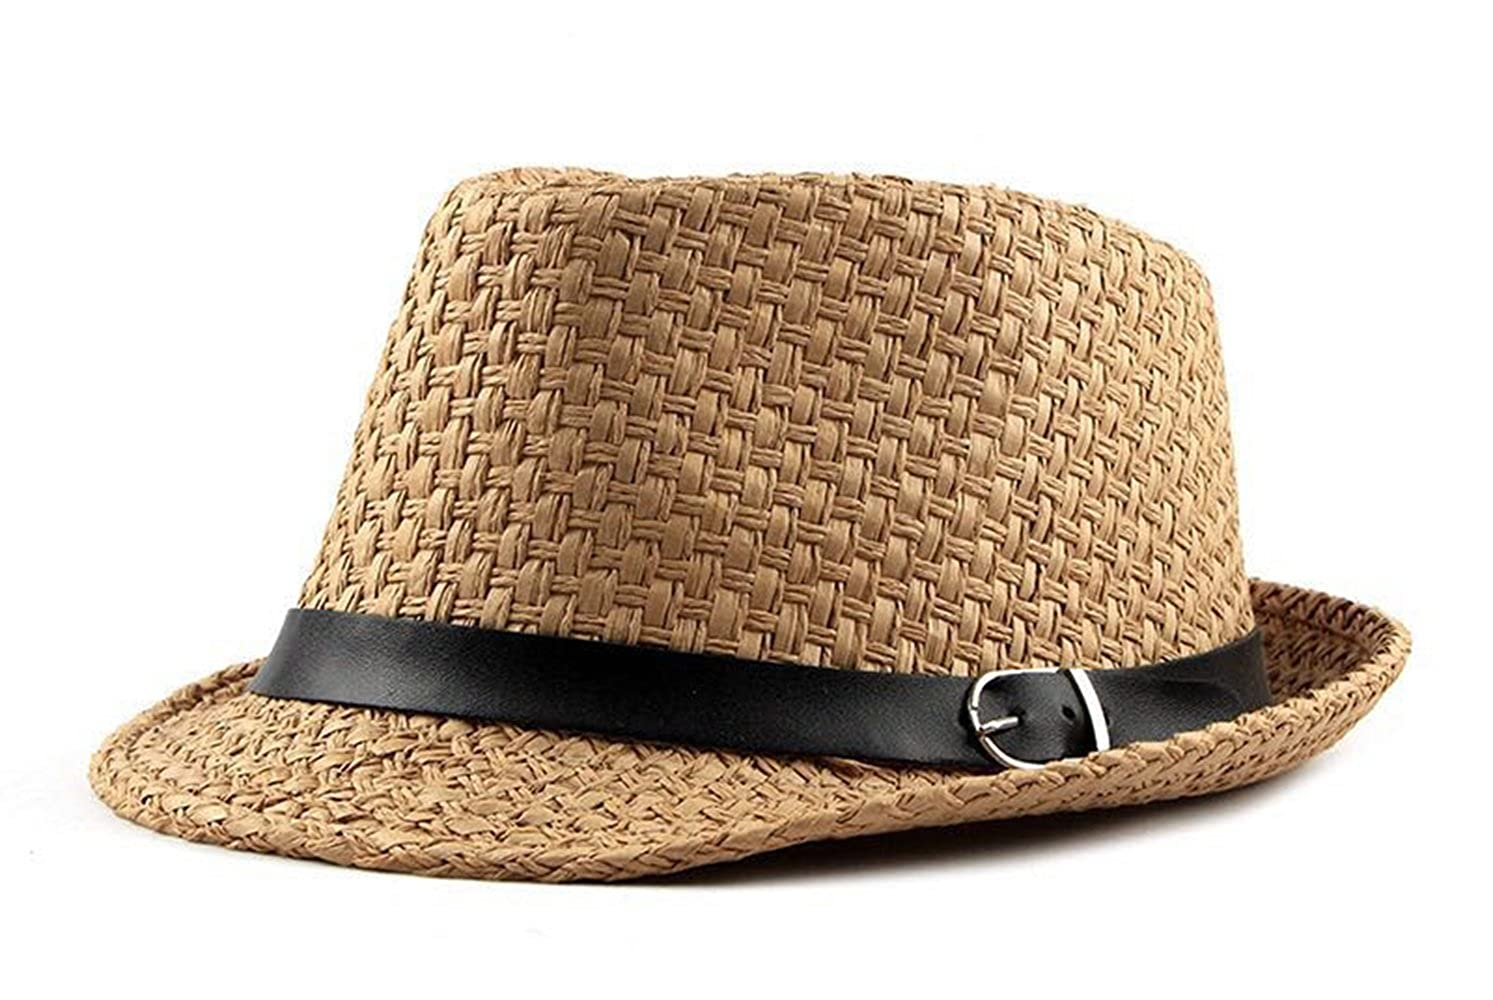 Panama Straw Hat Fedora Hat for Men Boater Hat Summer Travel Sun Protection Sun Hat FF-Z15